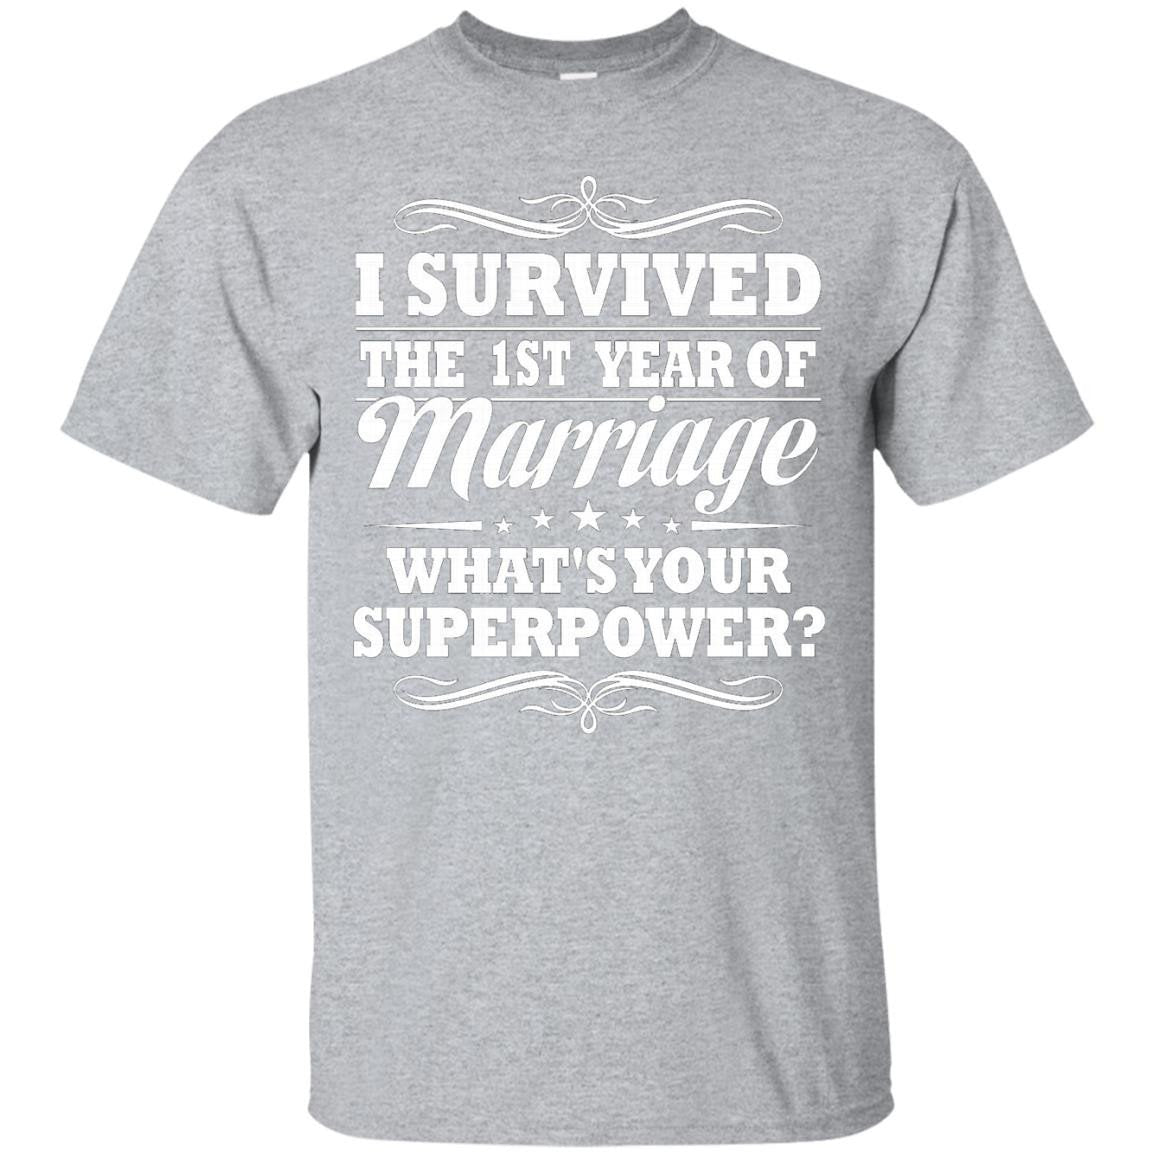 1st Wedding Anniversary Gift Ideas For Her Him- I Survived - T-Shirt